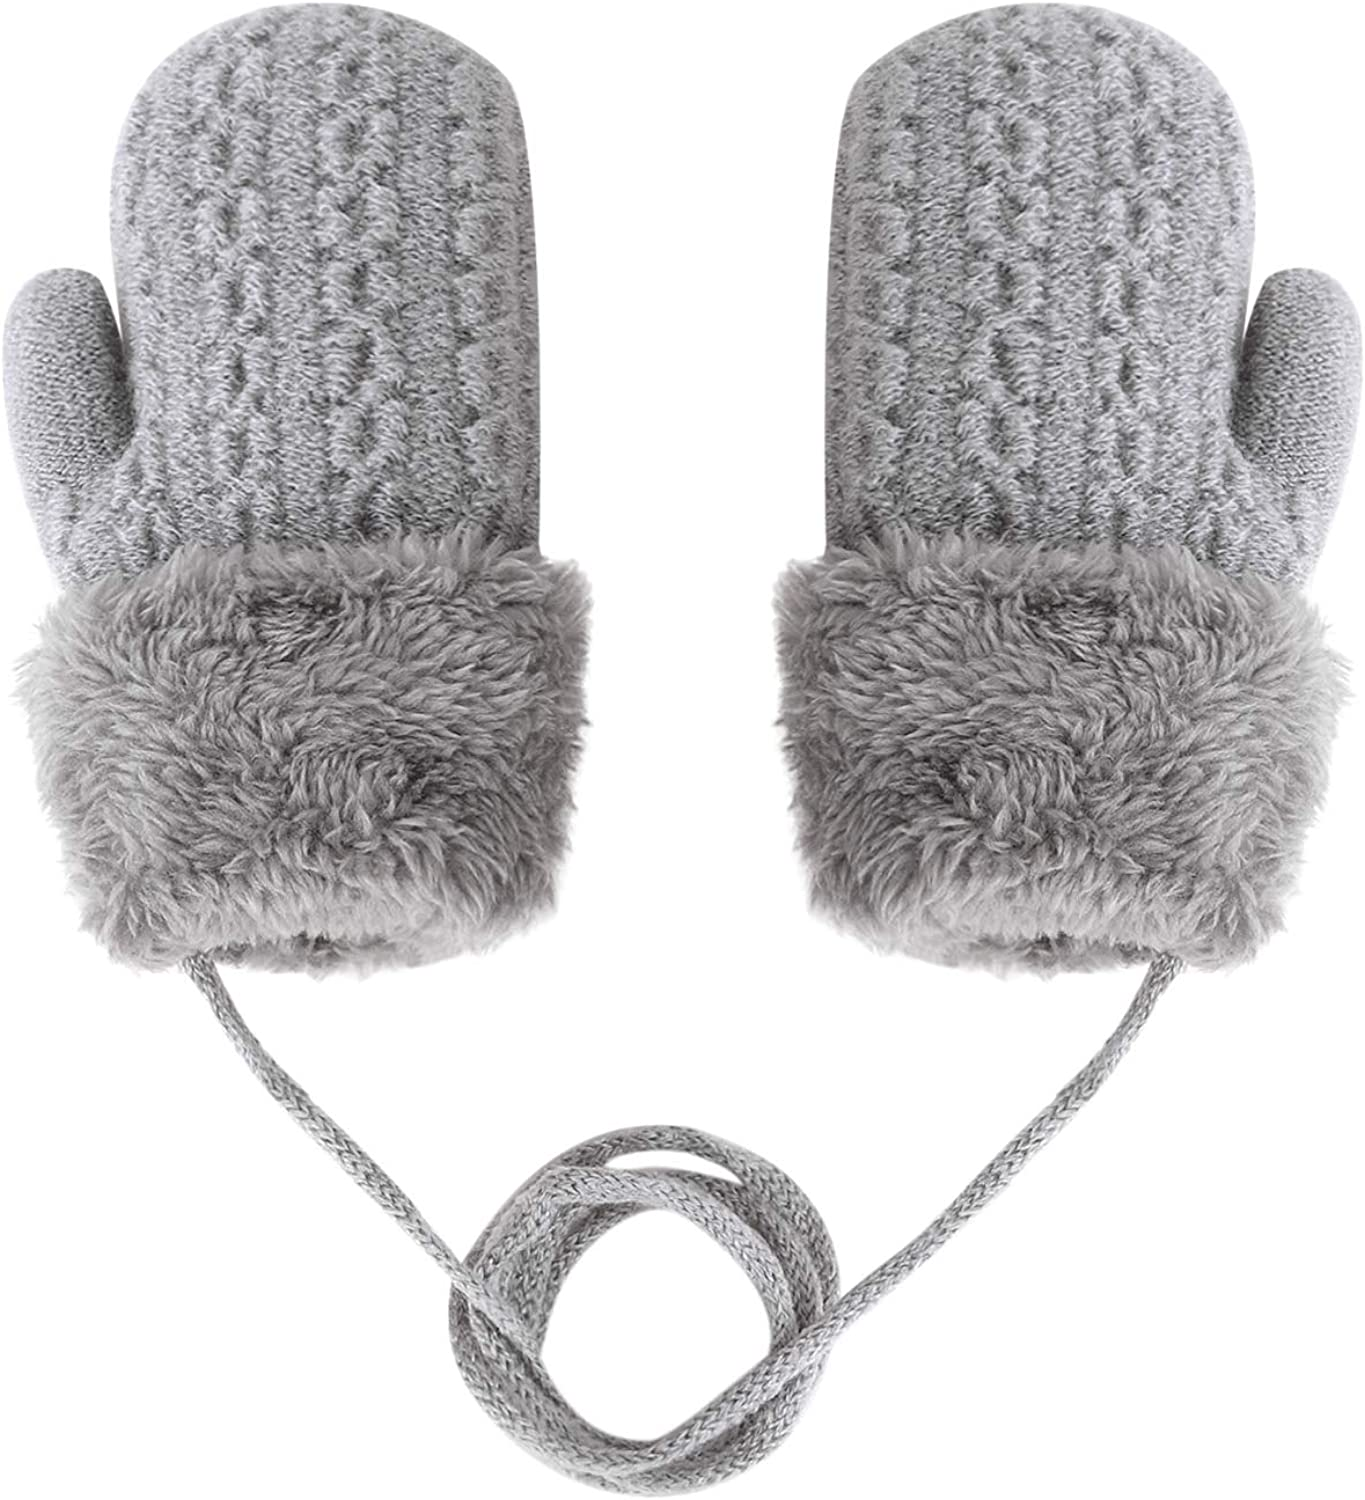 Toddlers Kids Winter Inventory cleanup selling sale Warm Mittens Baby Lanyard Gloves Ski Max 90% OFF Knit f